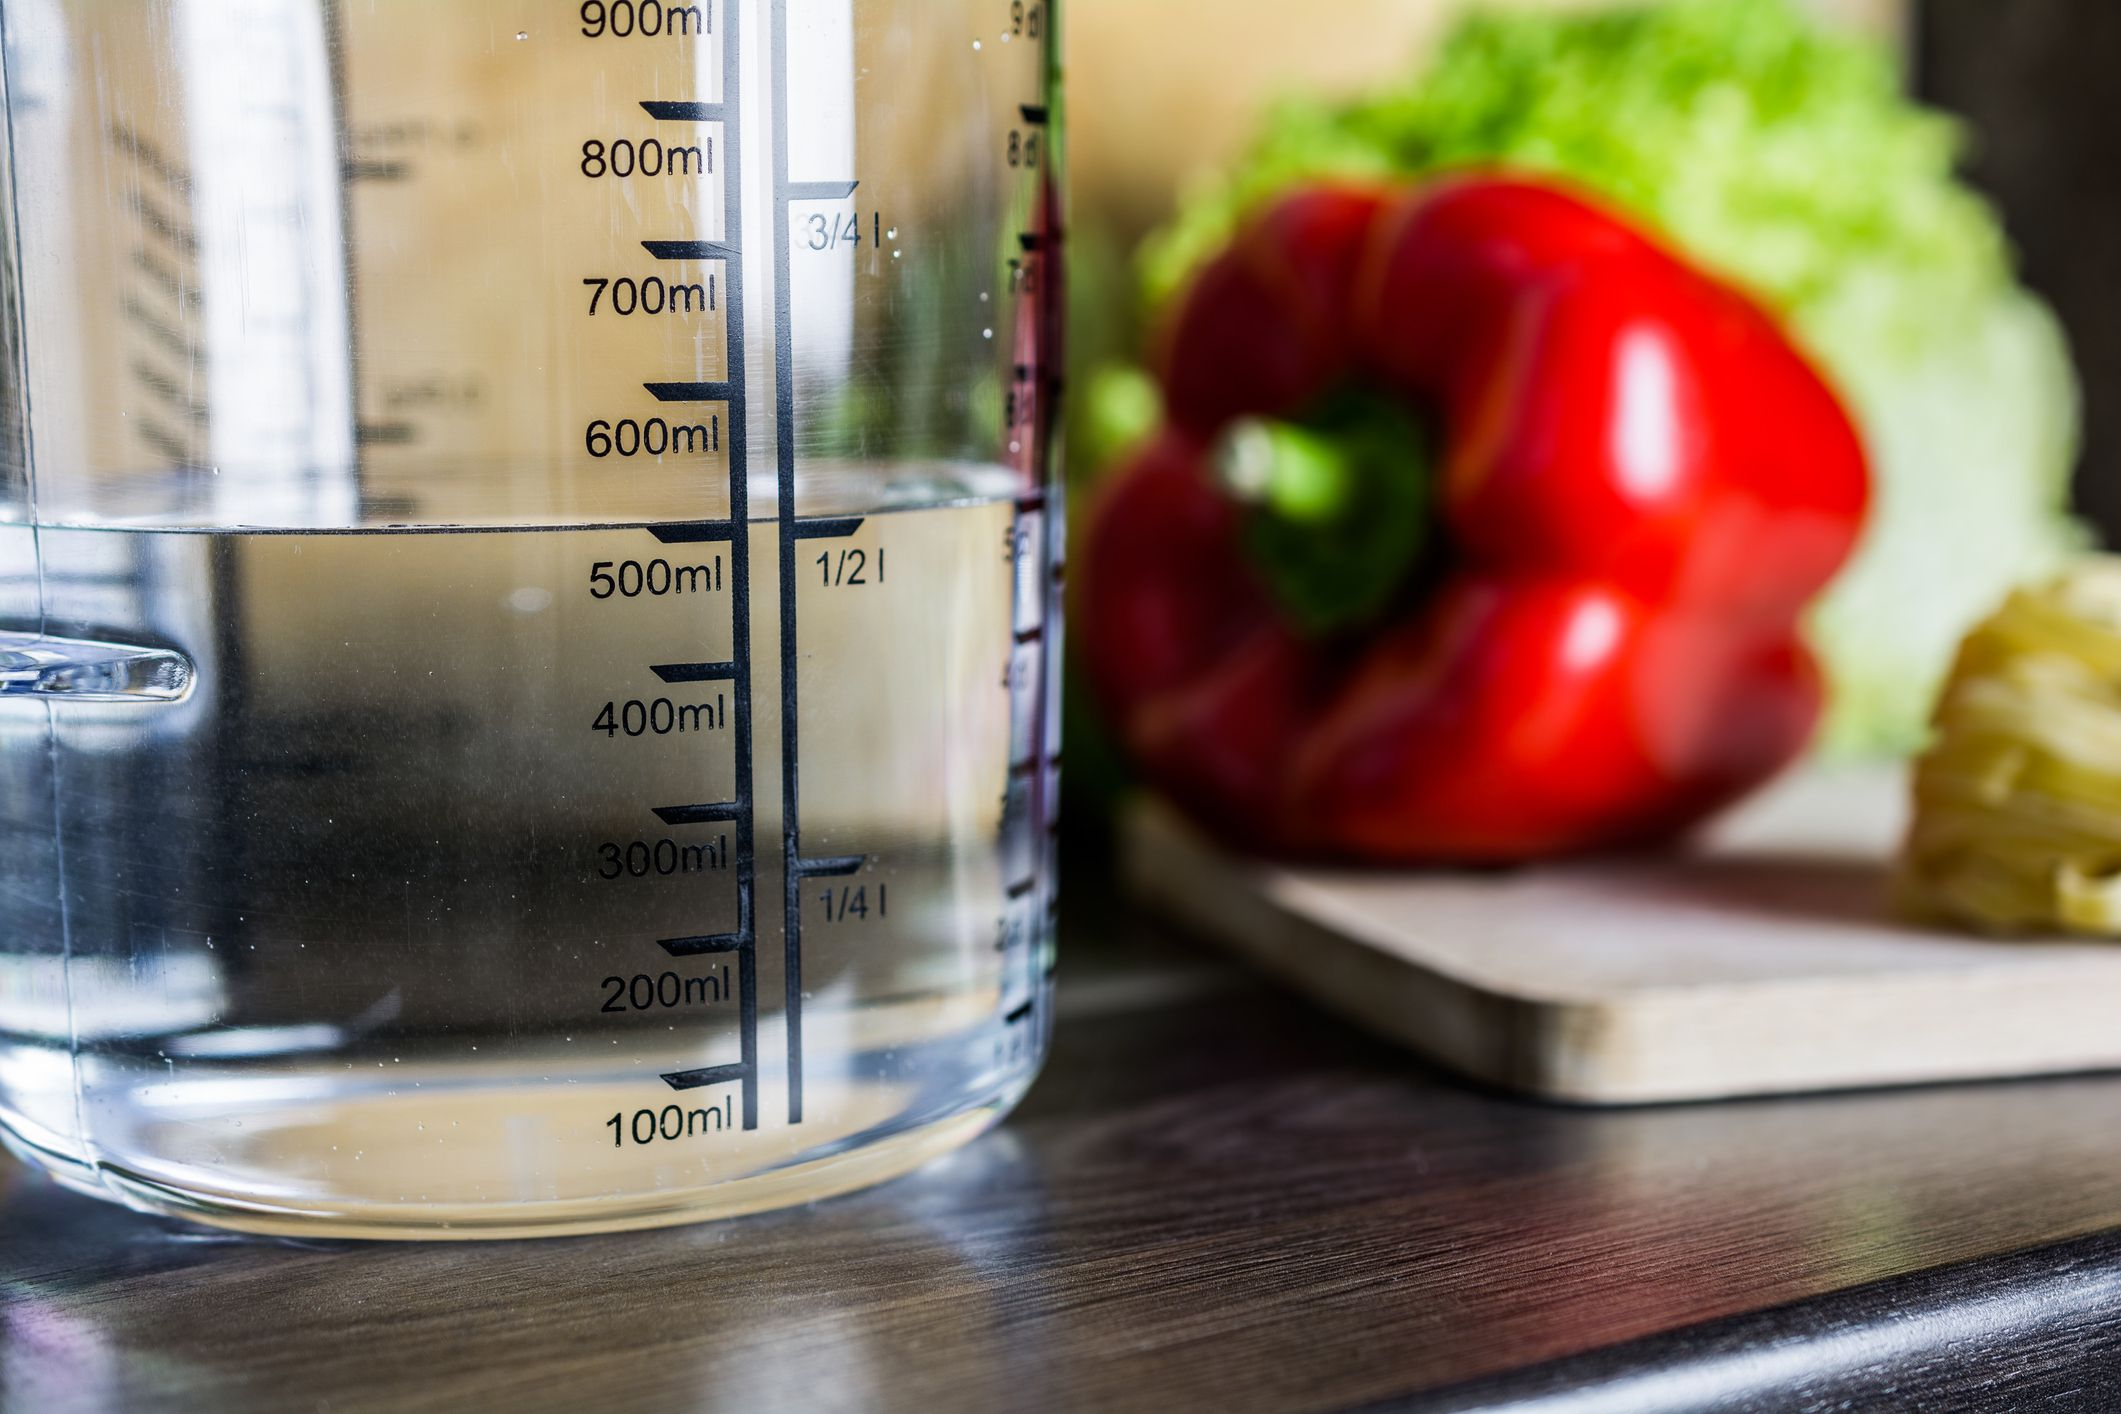 How To Convert Liters To Milliliters